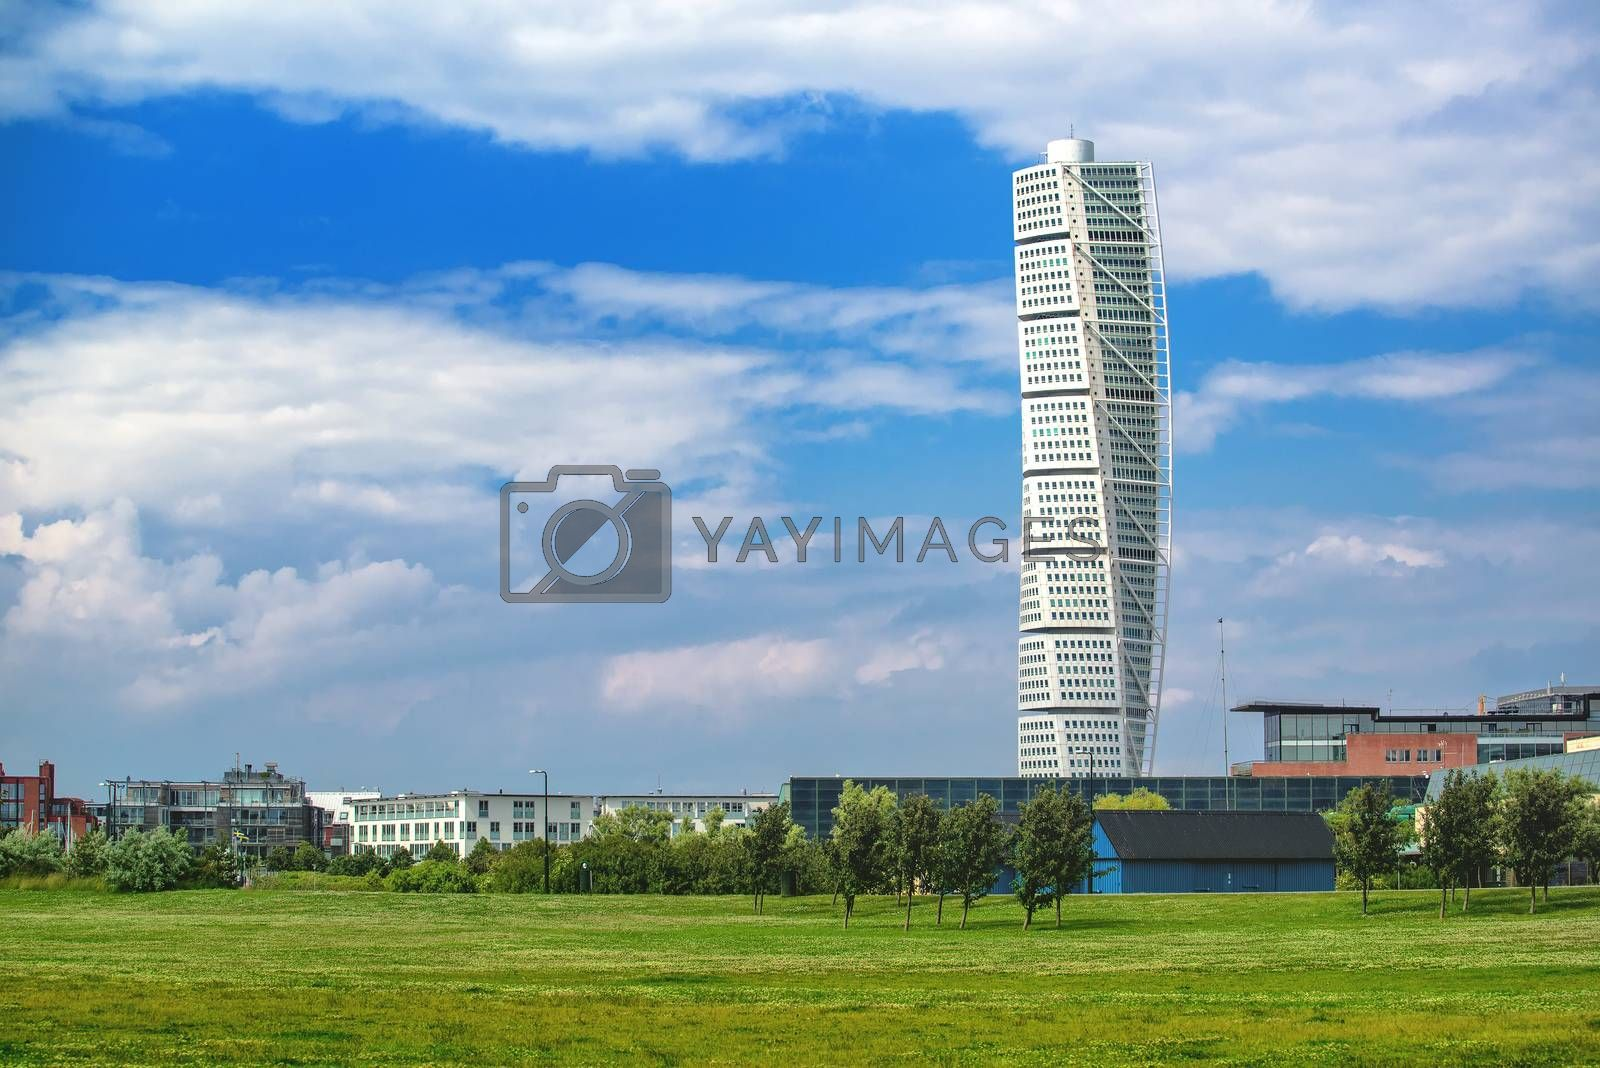 MALMO, SWEDEN - JUNE 29, 2015: Malmo Turning Torso, Distinctive Swedish City Landmark is the Tallest Building in Sweden and Scandinavia, Completed in 2005.